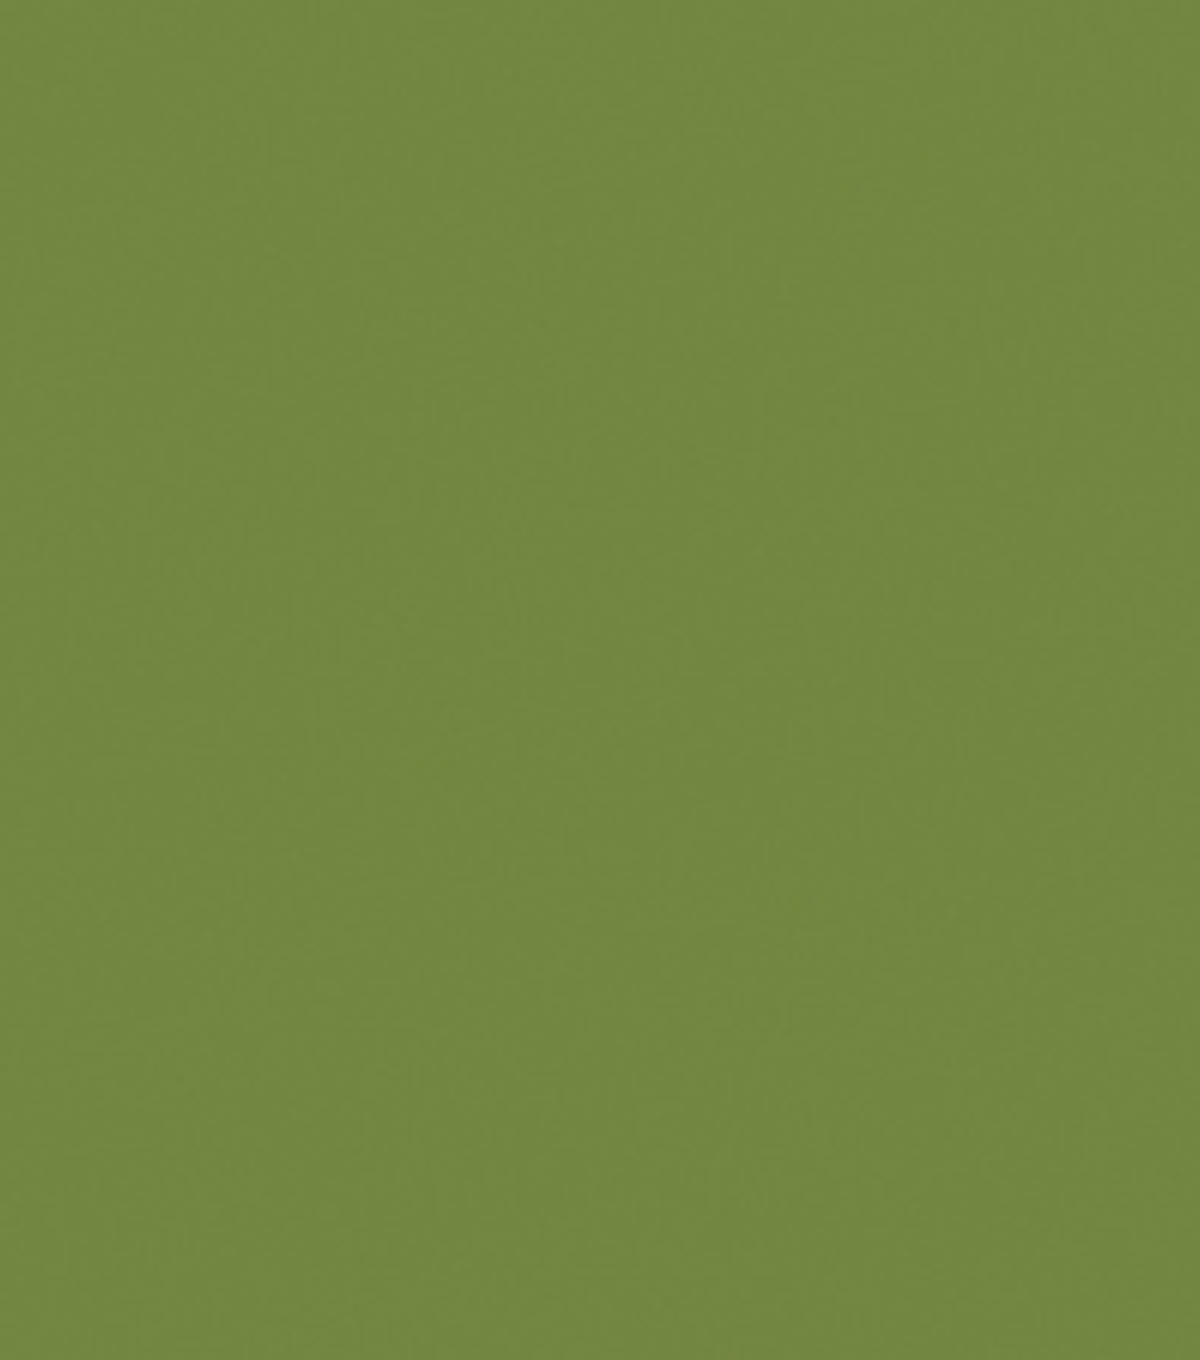 Delta Ceramcoat Acrylic Paint 2 oz, Seminole Green